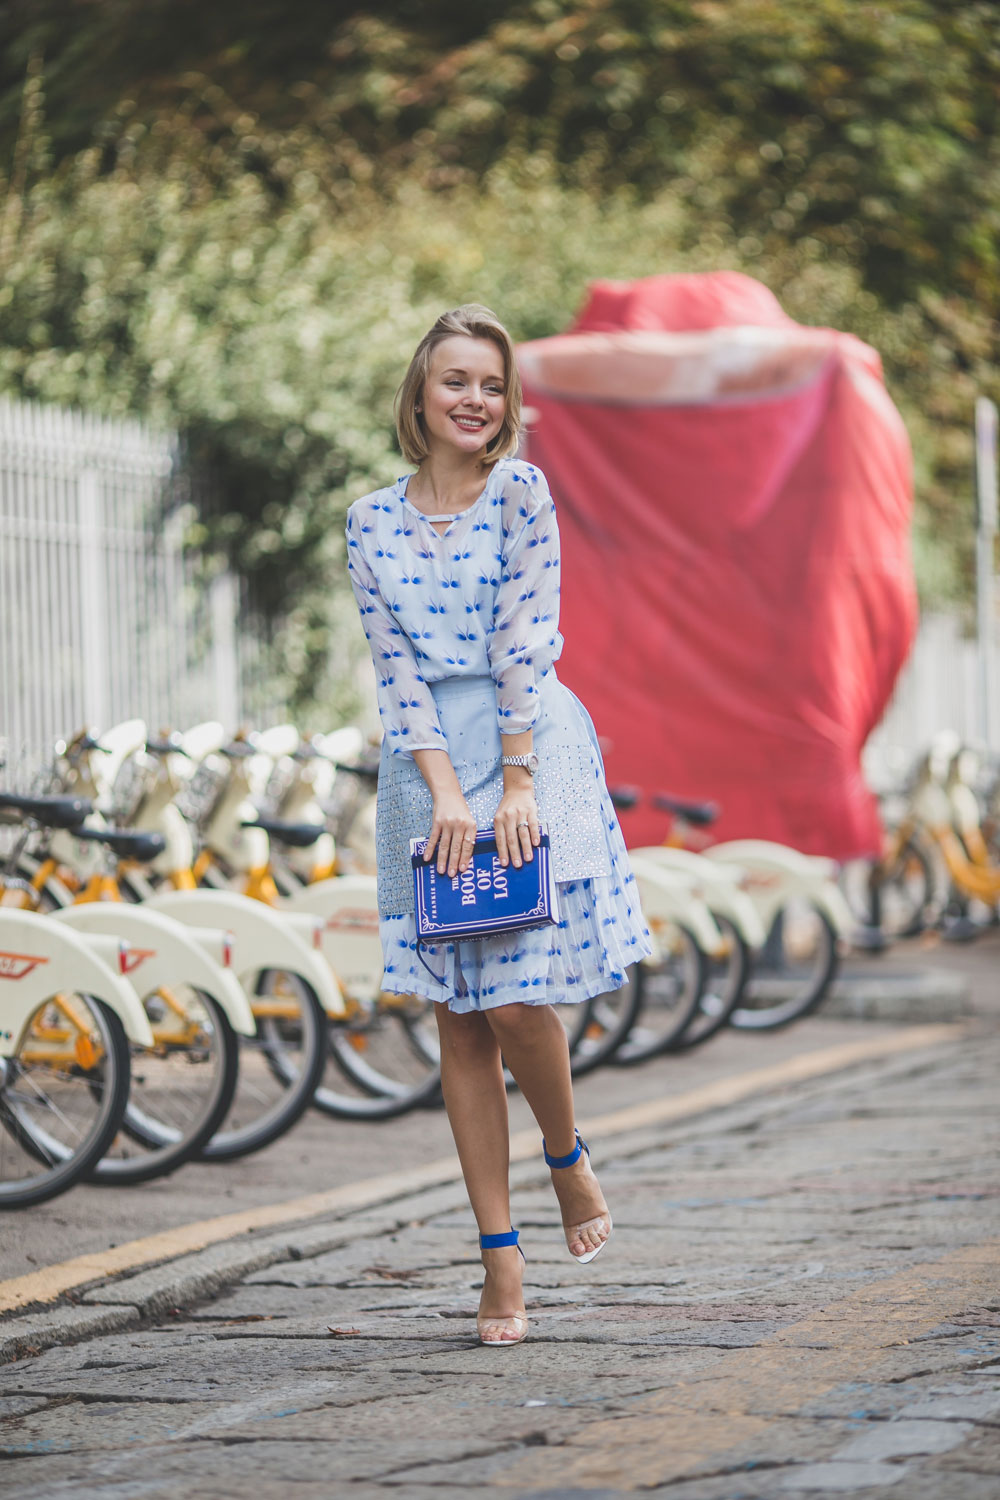 darya-kamalova-fashion-lifestyle-blogger-from-thecablook-com-on-milan-fashion-week-ss15-mfw-wears-frankie-morello-total-outfit--6040